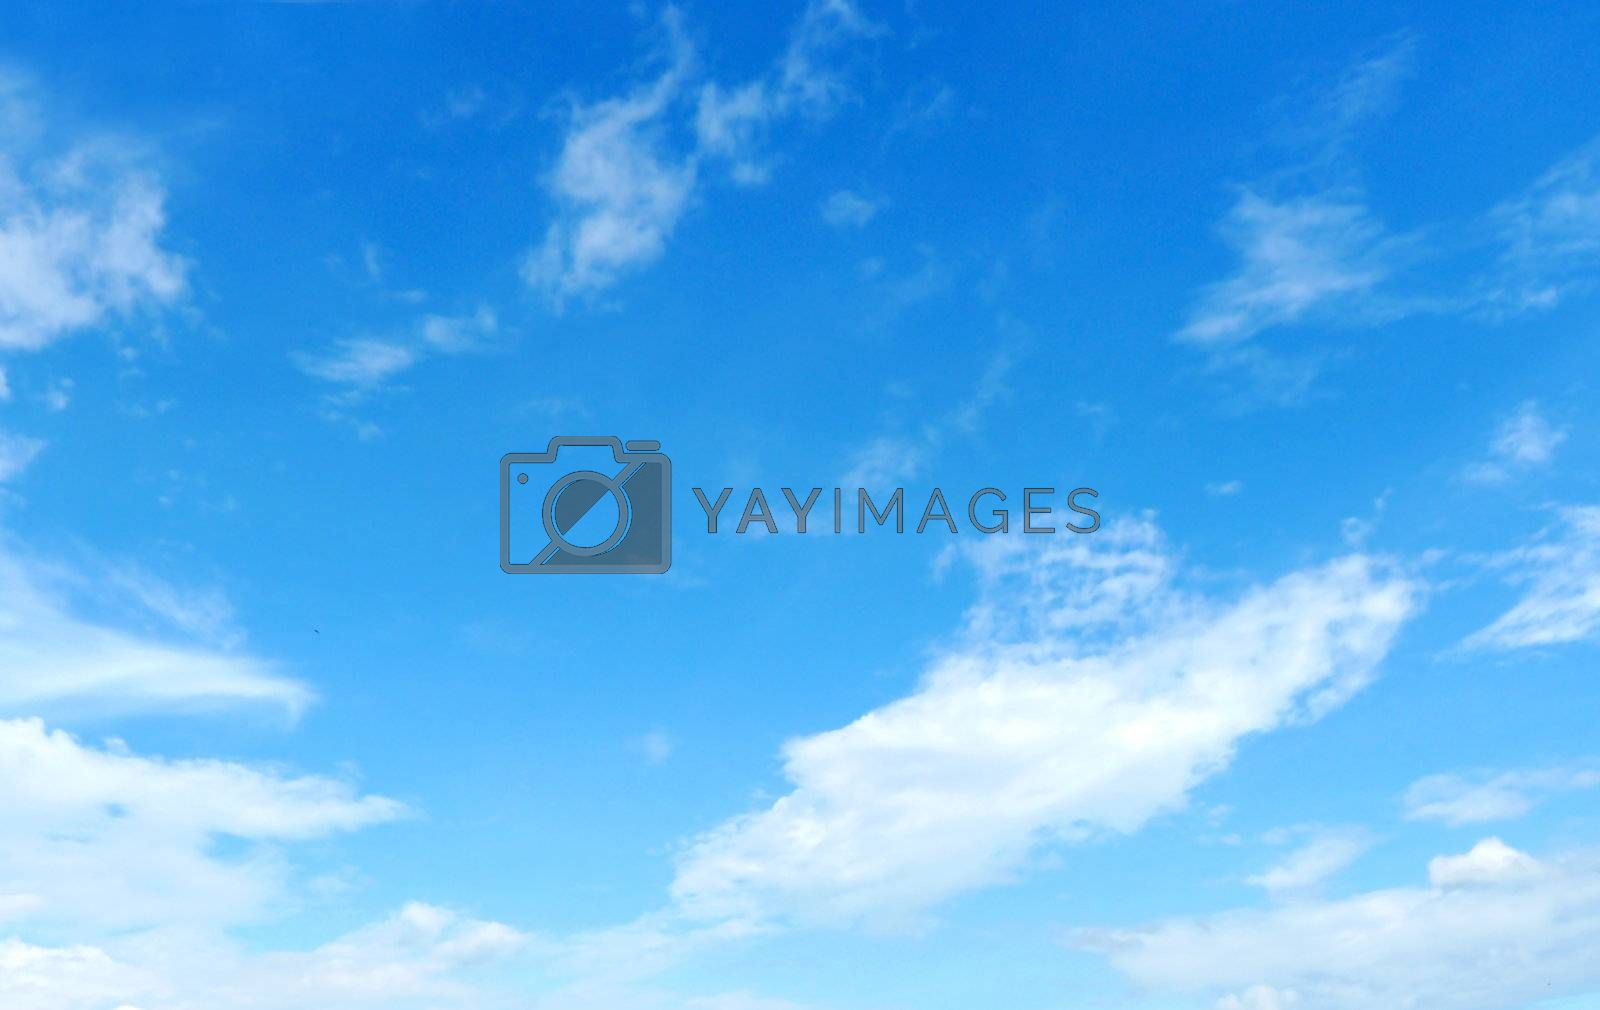 Nice sky and cloud background